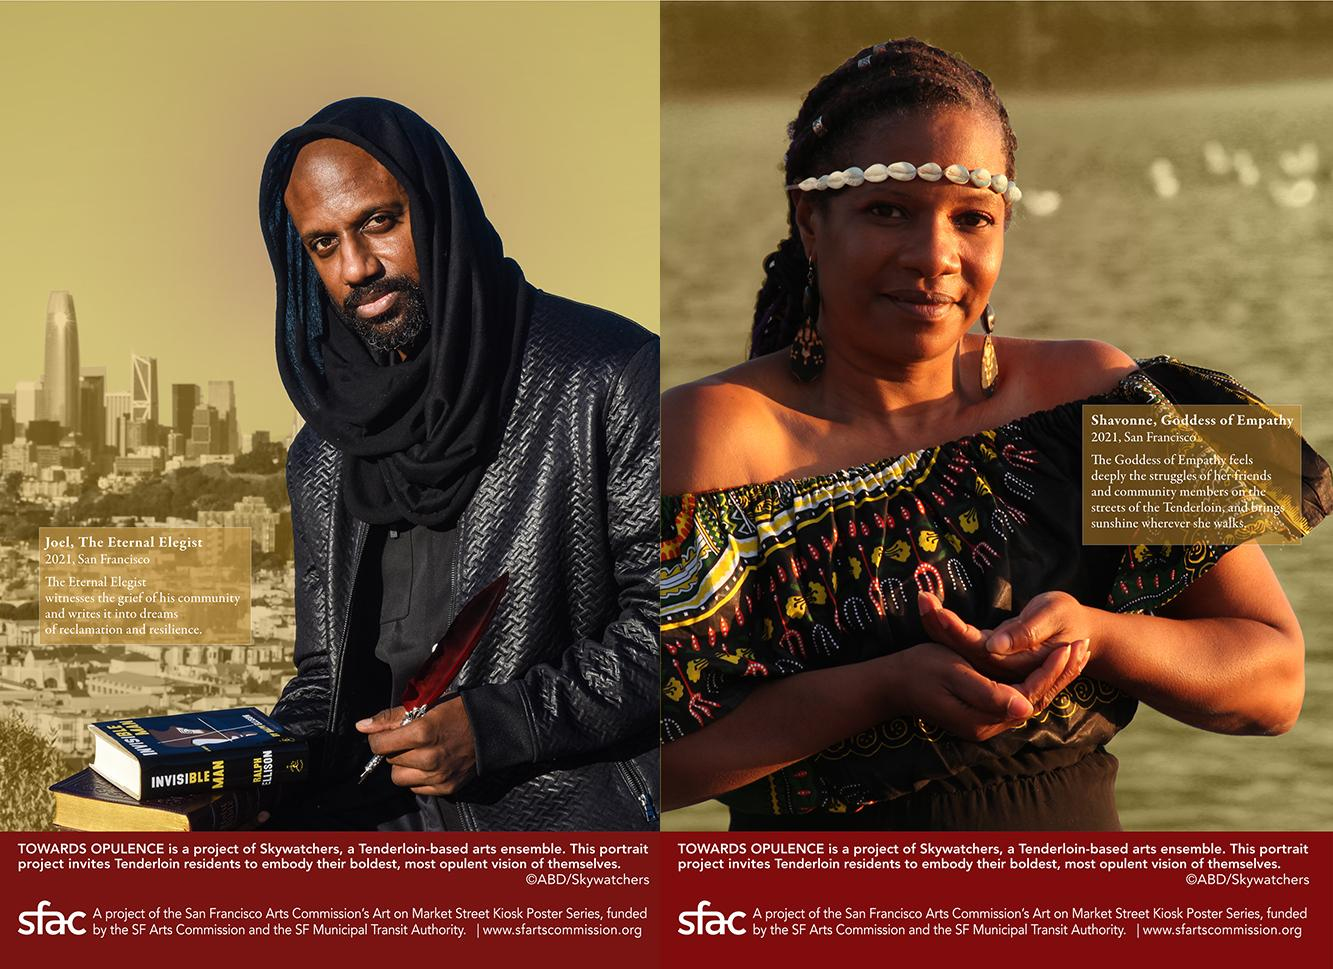 Side by side posters from The Opulence Project. On the left is a black man, wearing all black, with a scarf over his head, looking forward and holding books and a quill. On the right is a black woman wearing a patterned off the shoulder top, looking forward with both her hands cupped holding something. She wears a cowrie headband.